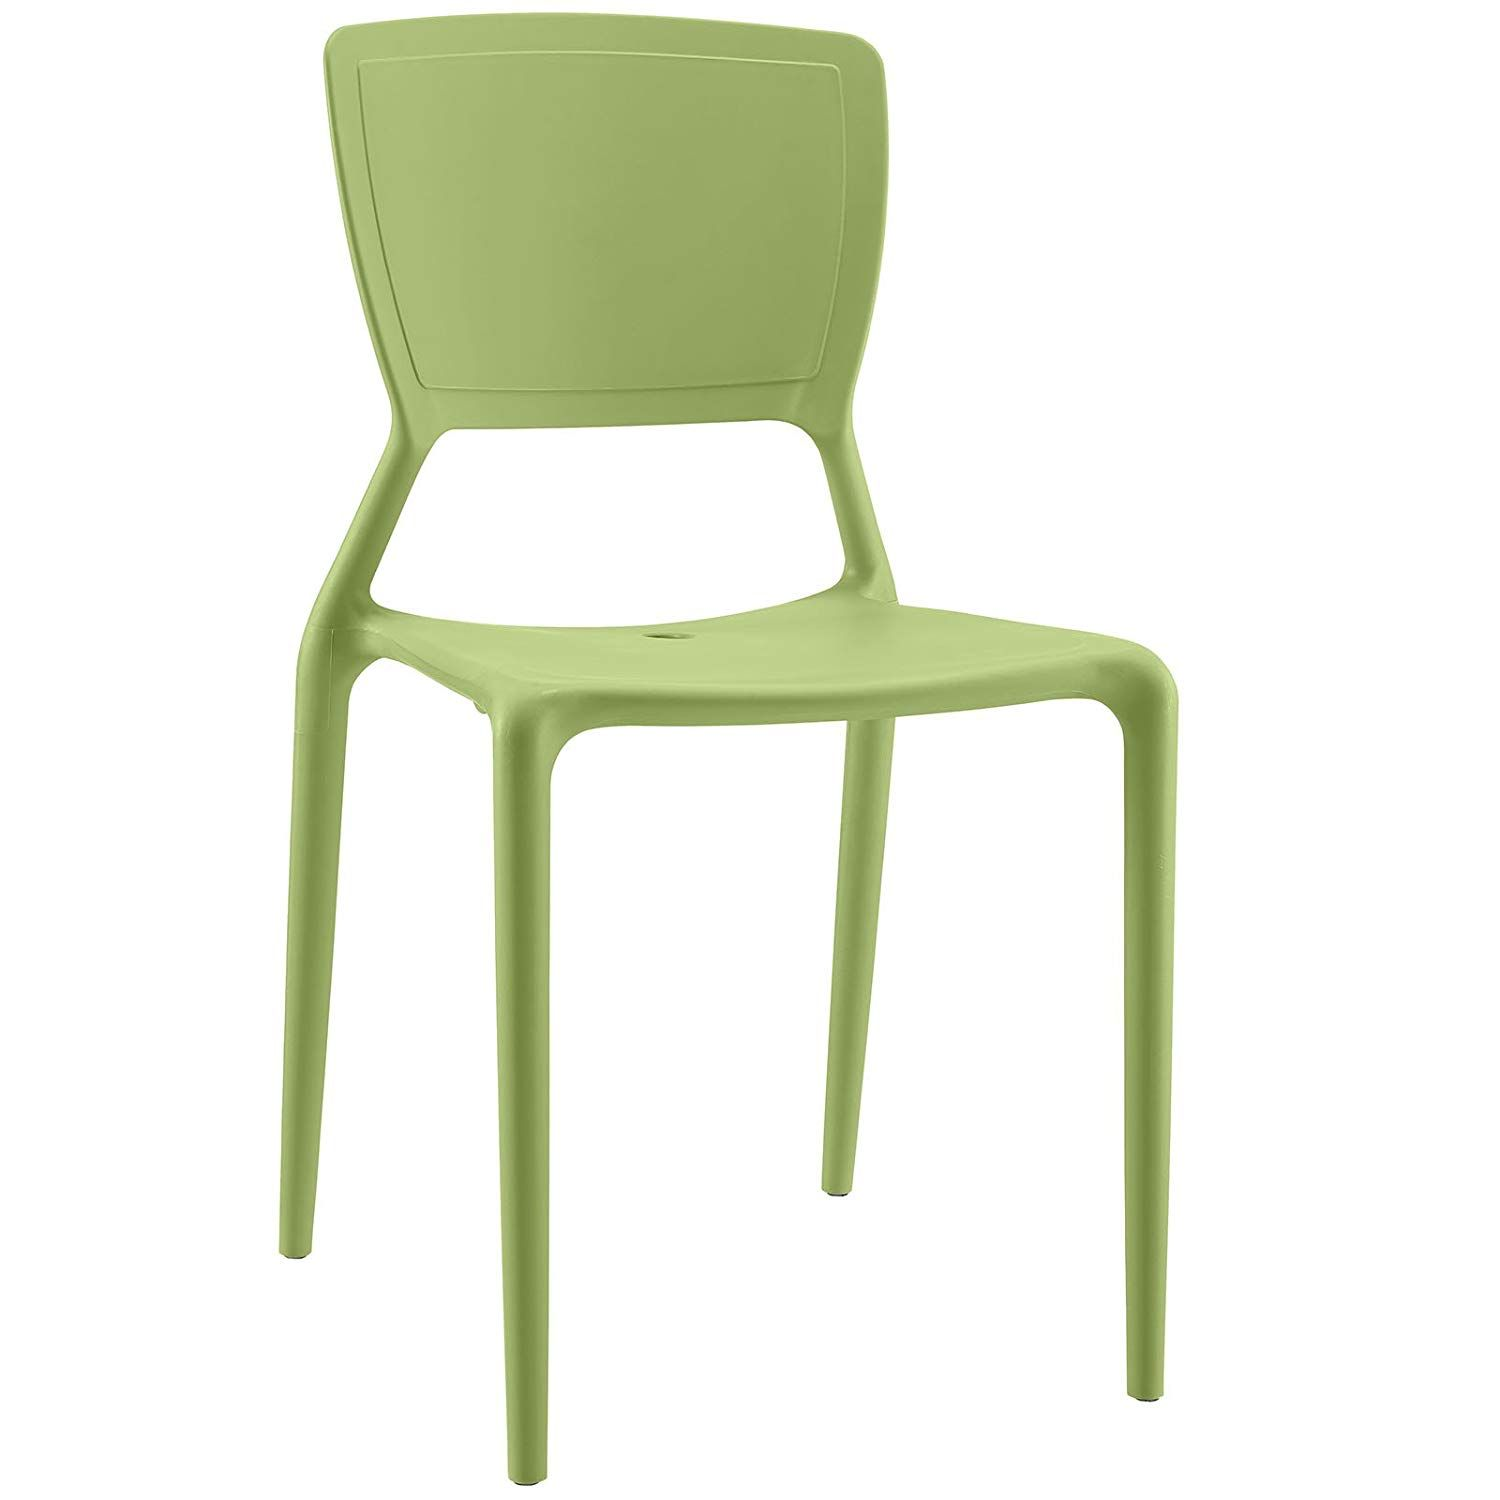 Modway Fine Dining Side Chair In Green In 2020 Side Chairs